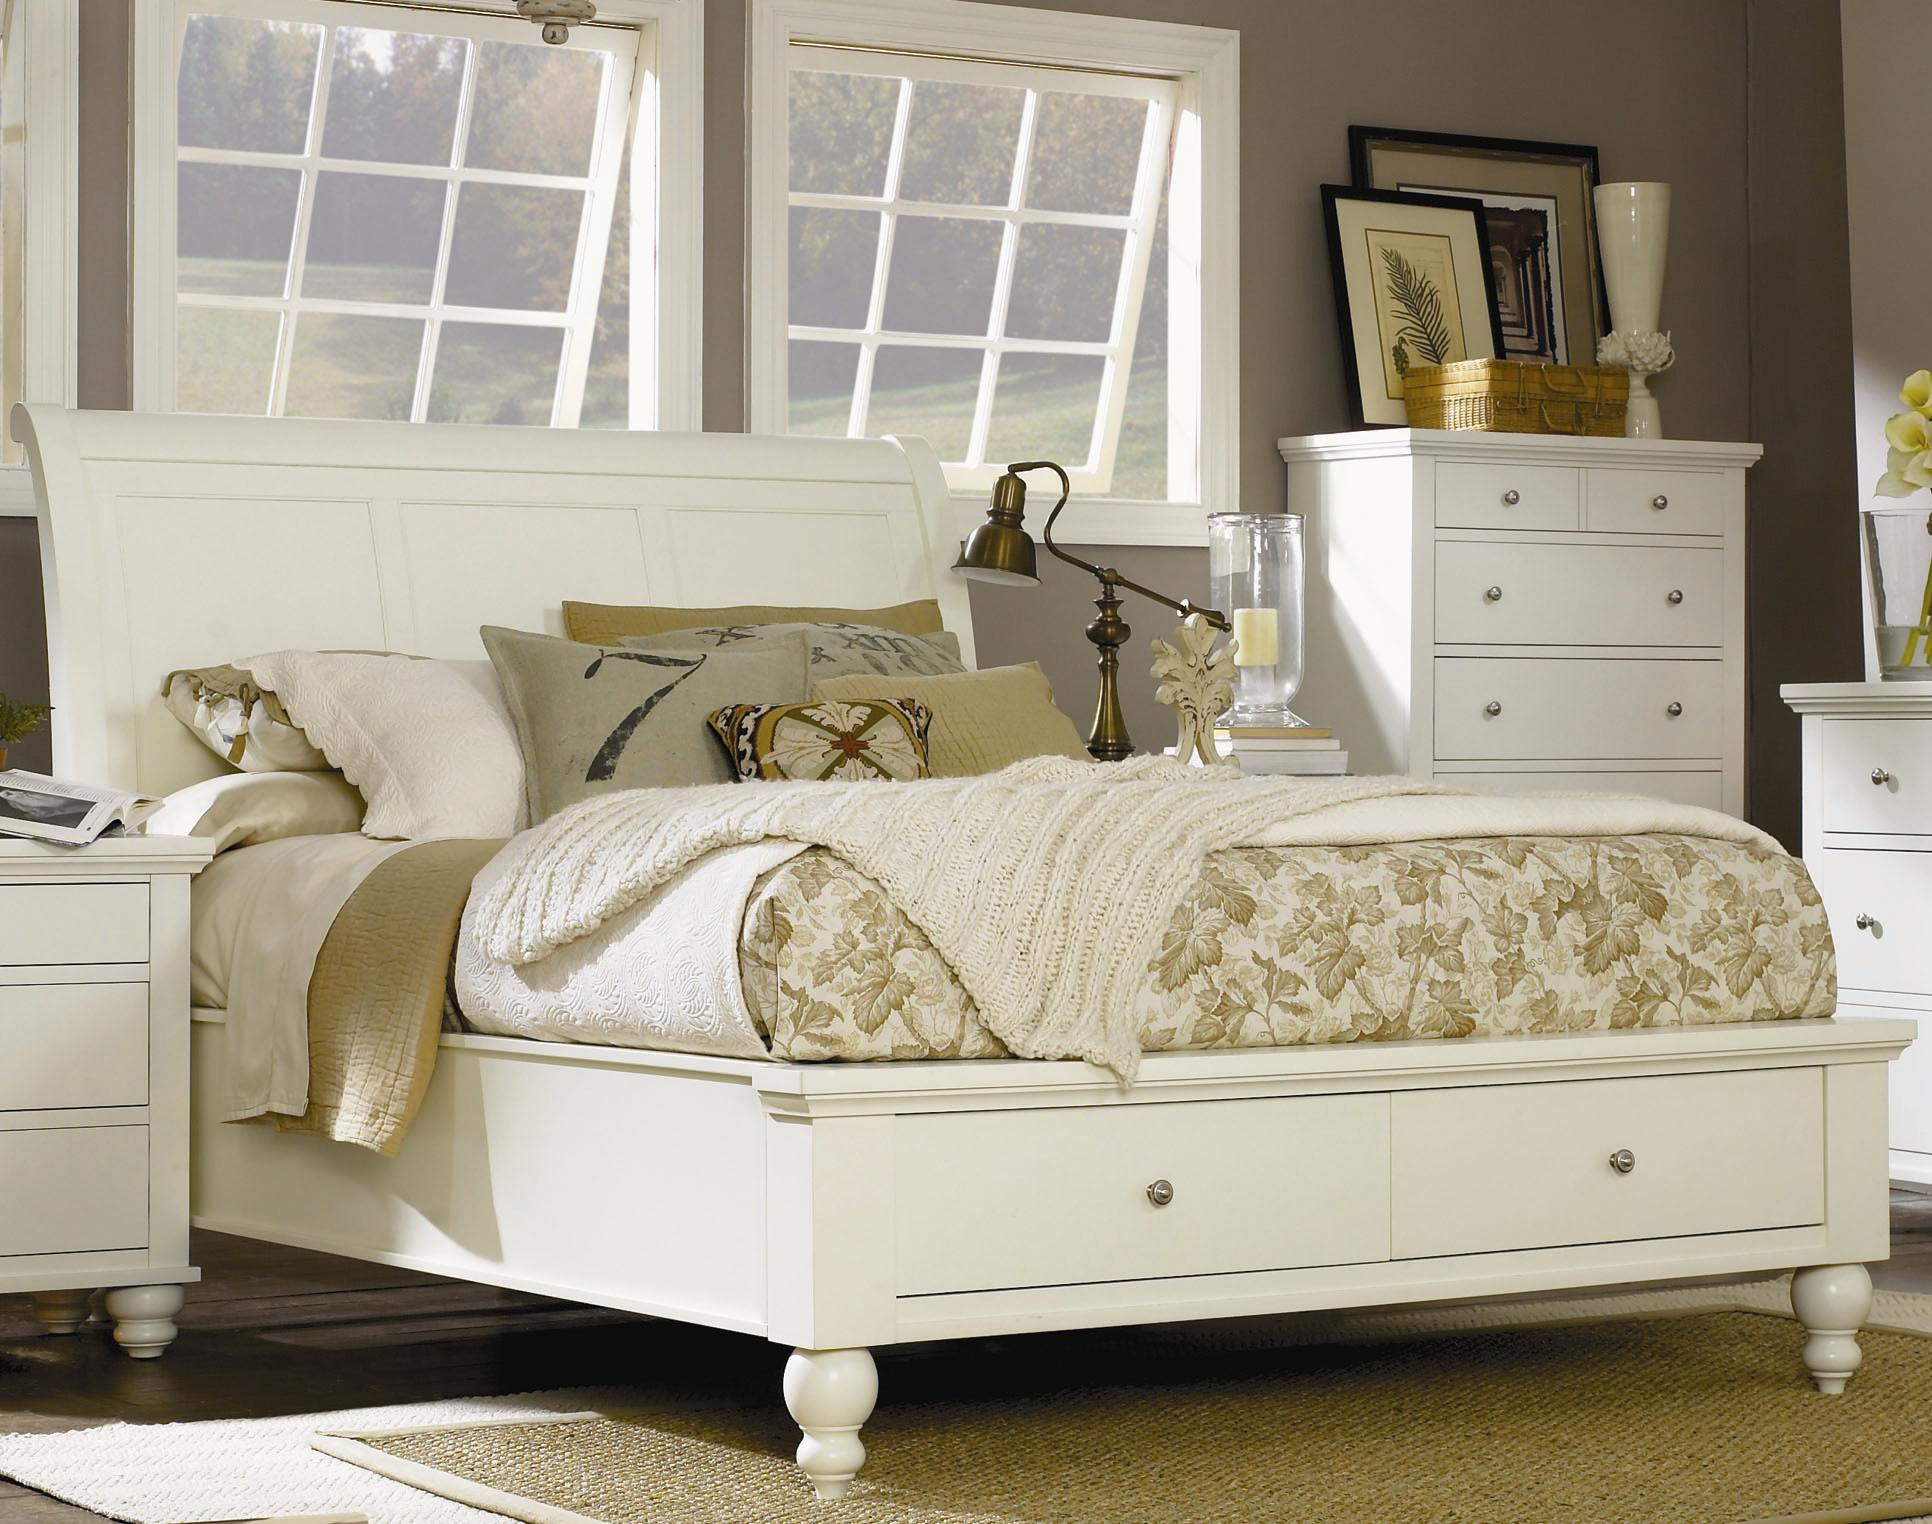 Aspenhome cambridge icb 400 403d 402l 1 egg queen size bed with sleigh headboard drawer Home furniture queen size bed